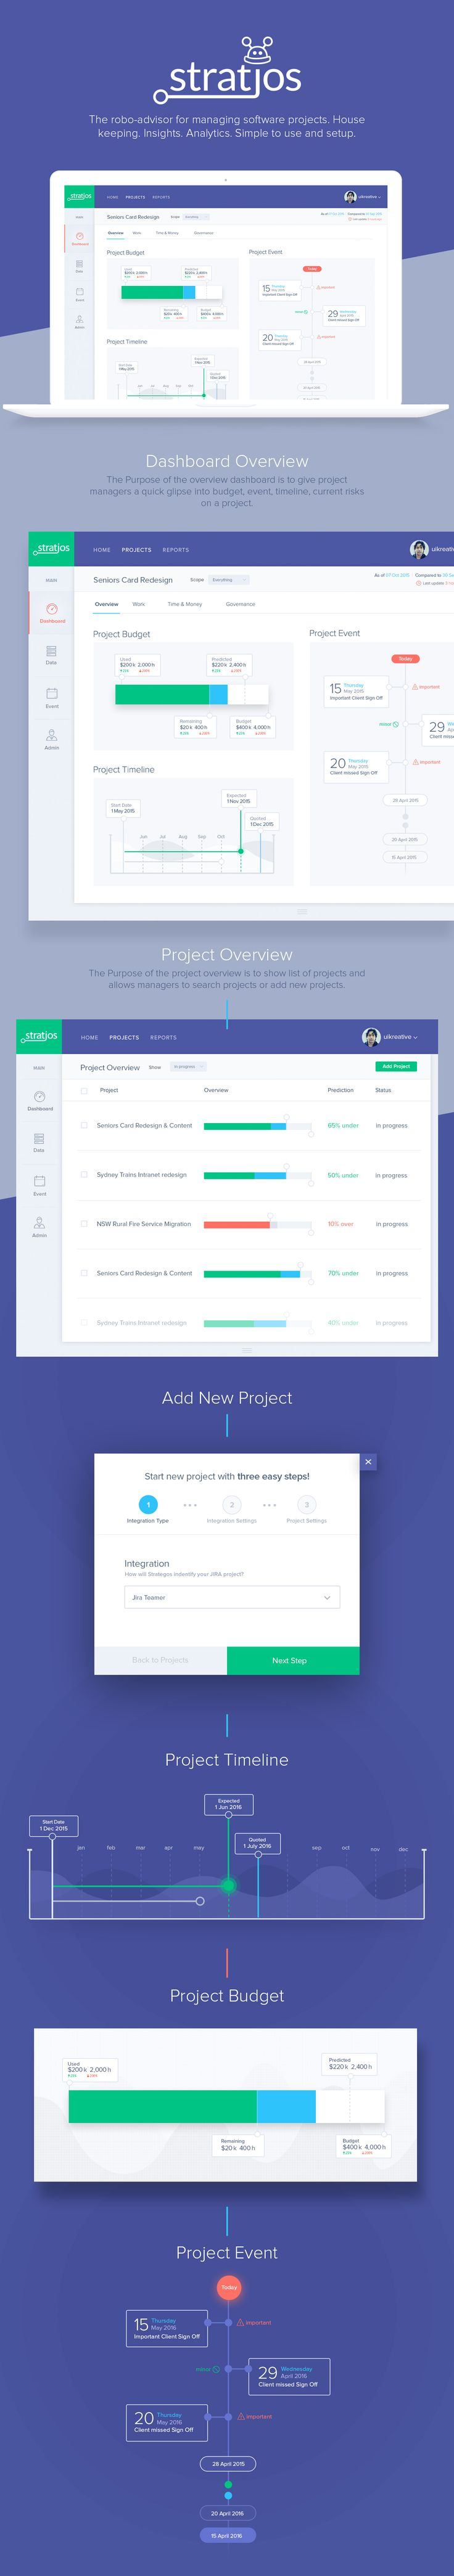 Stratjos: Dashboard design